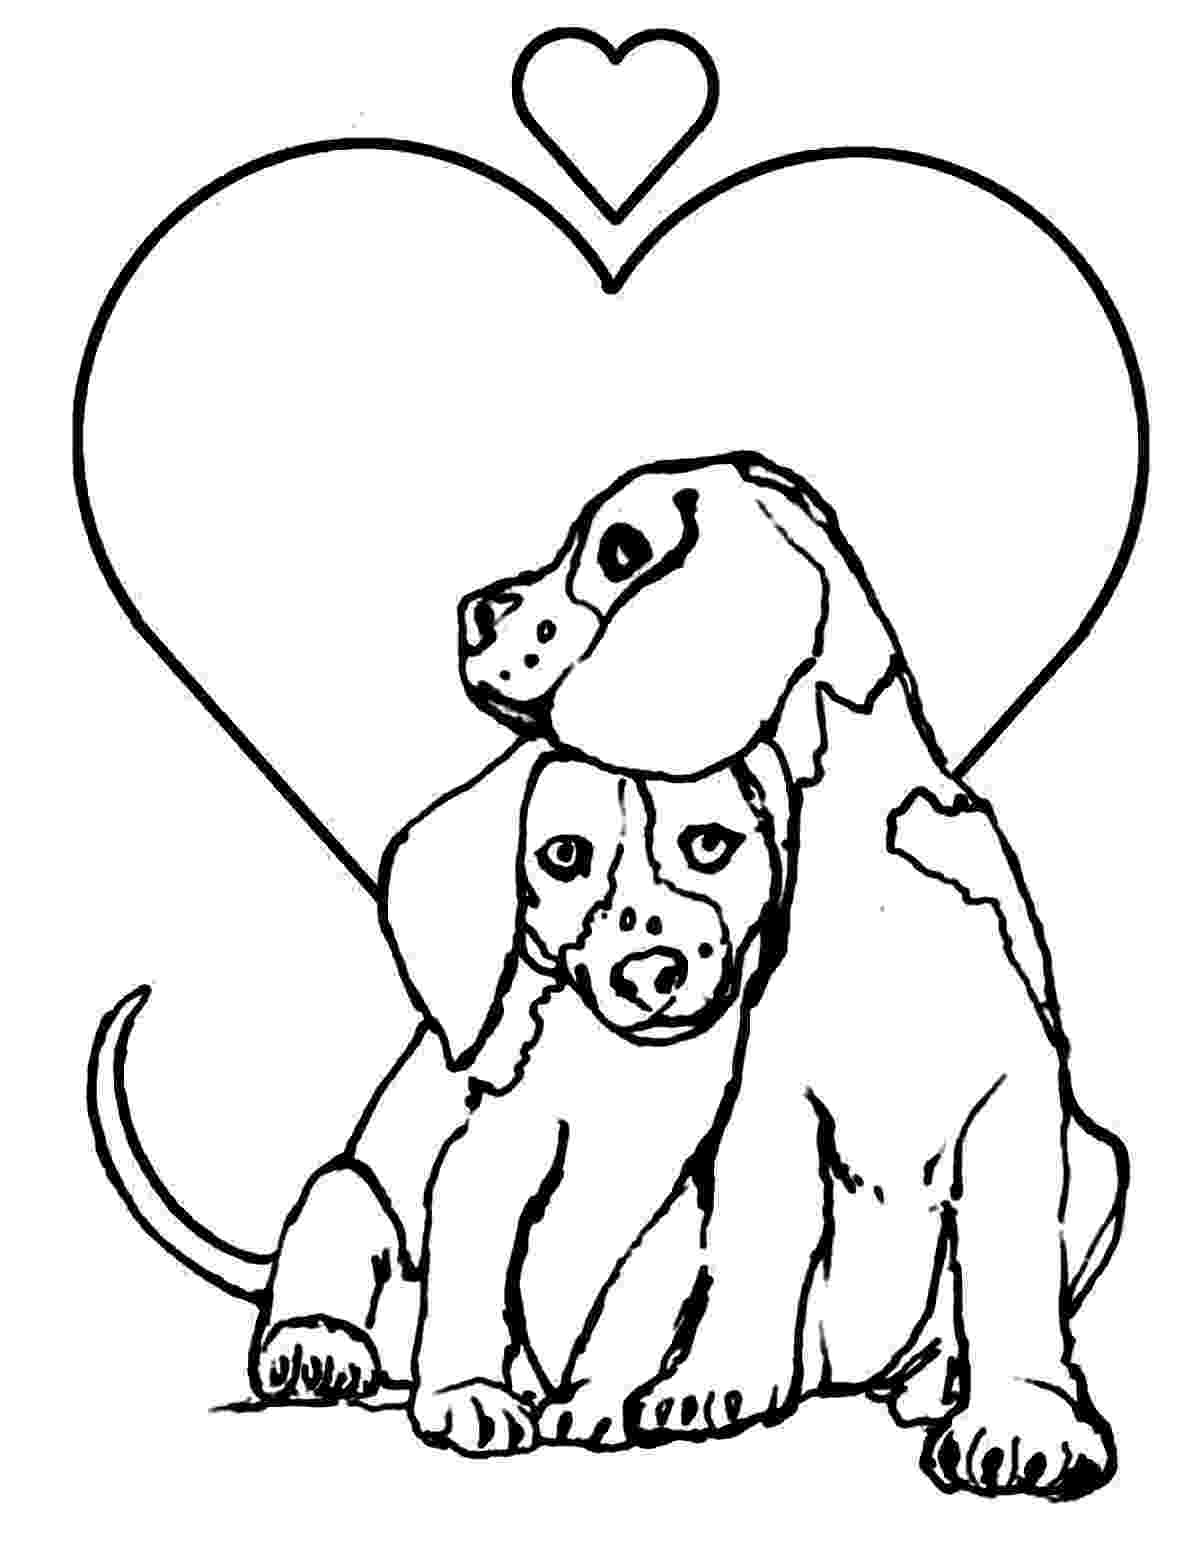 coloring page of dog free printable dog coloring pages for kids of page coloring dog 1 1